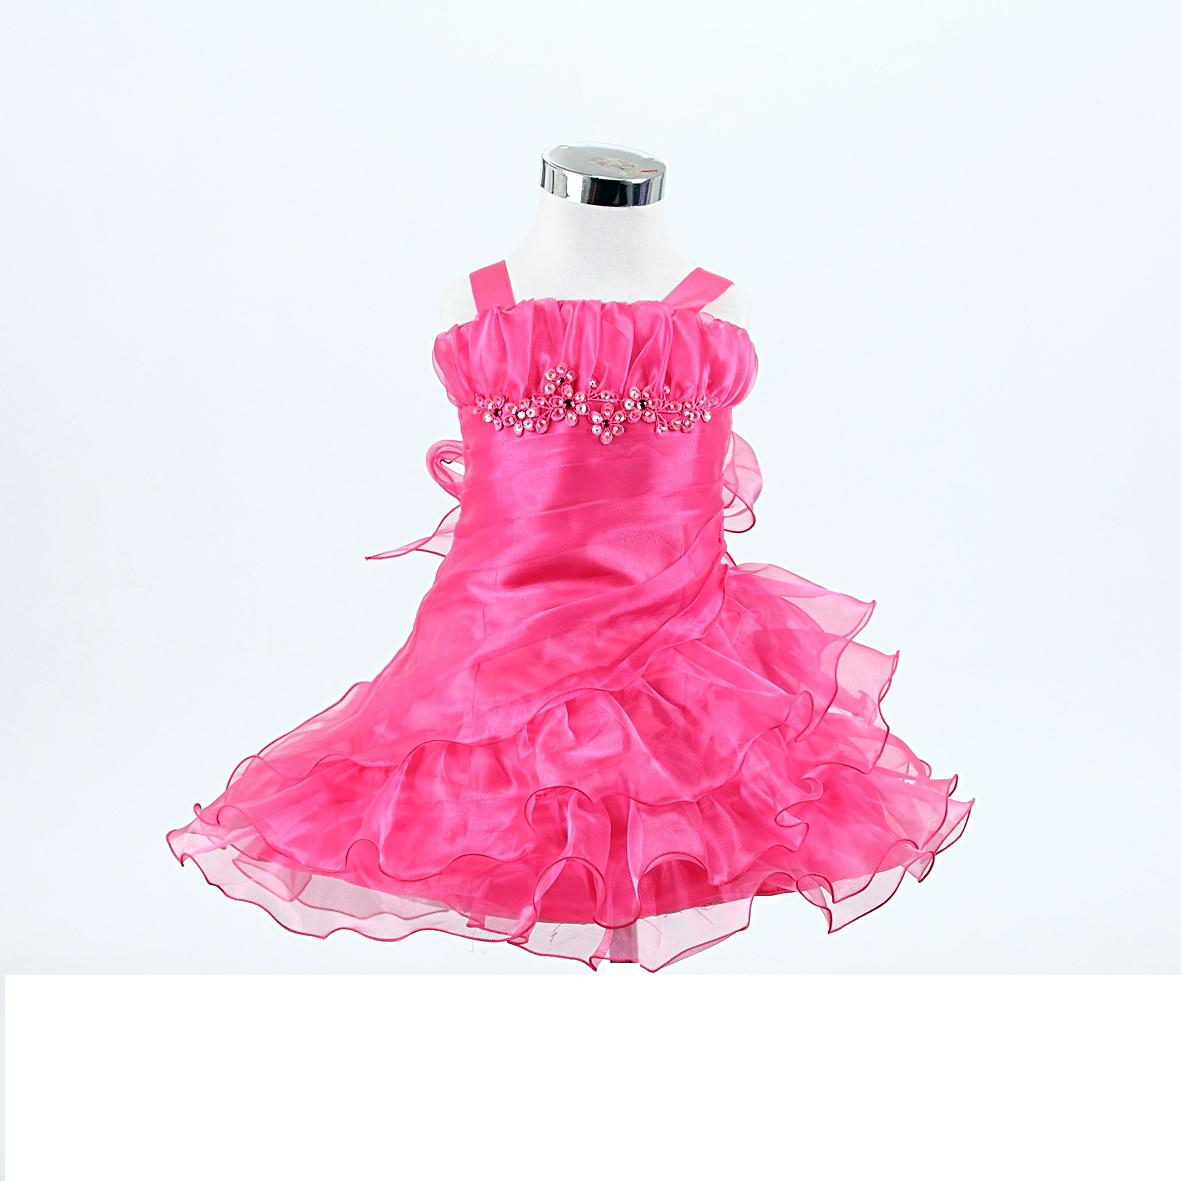 Party Wear Dresses For Infants & Trends For Fall - Dresses Ask